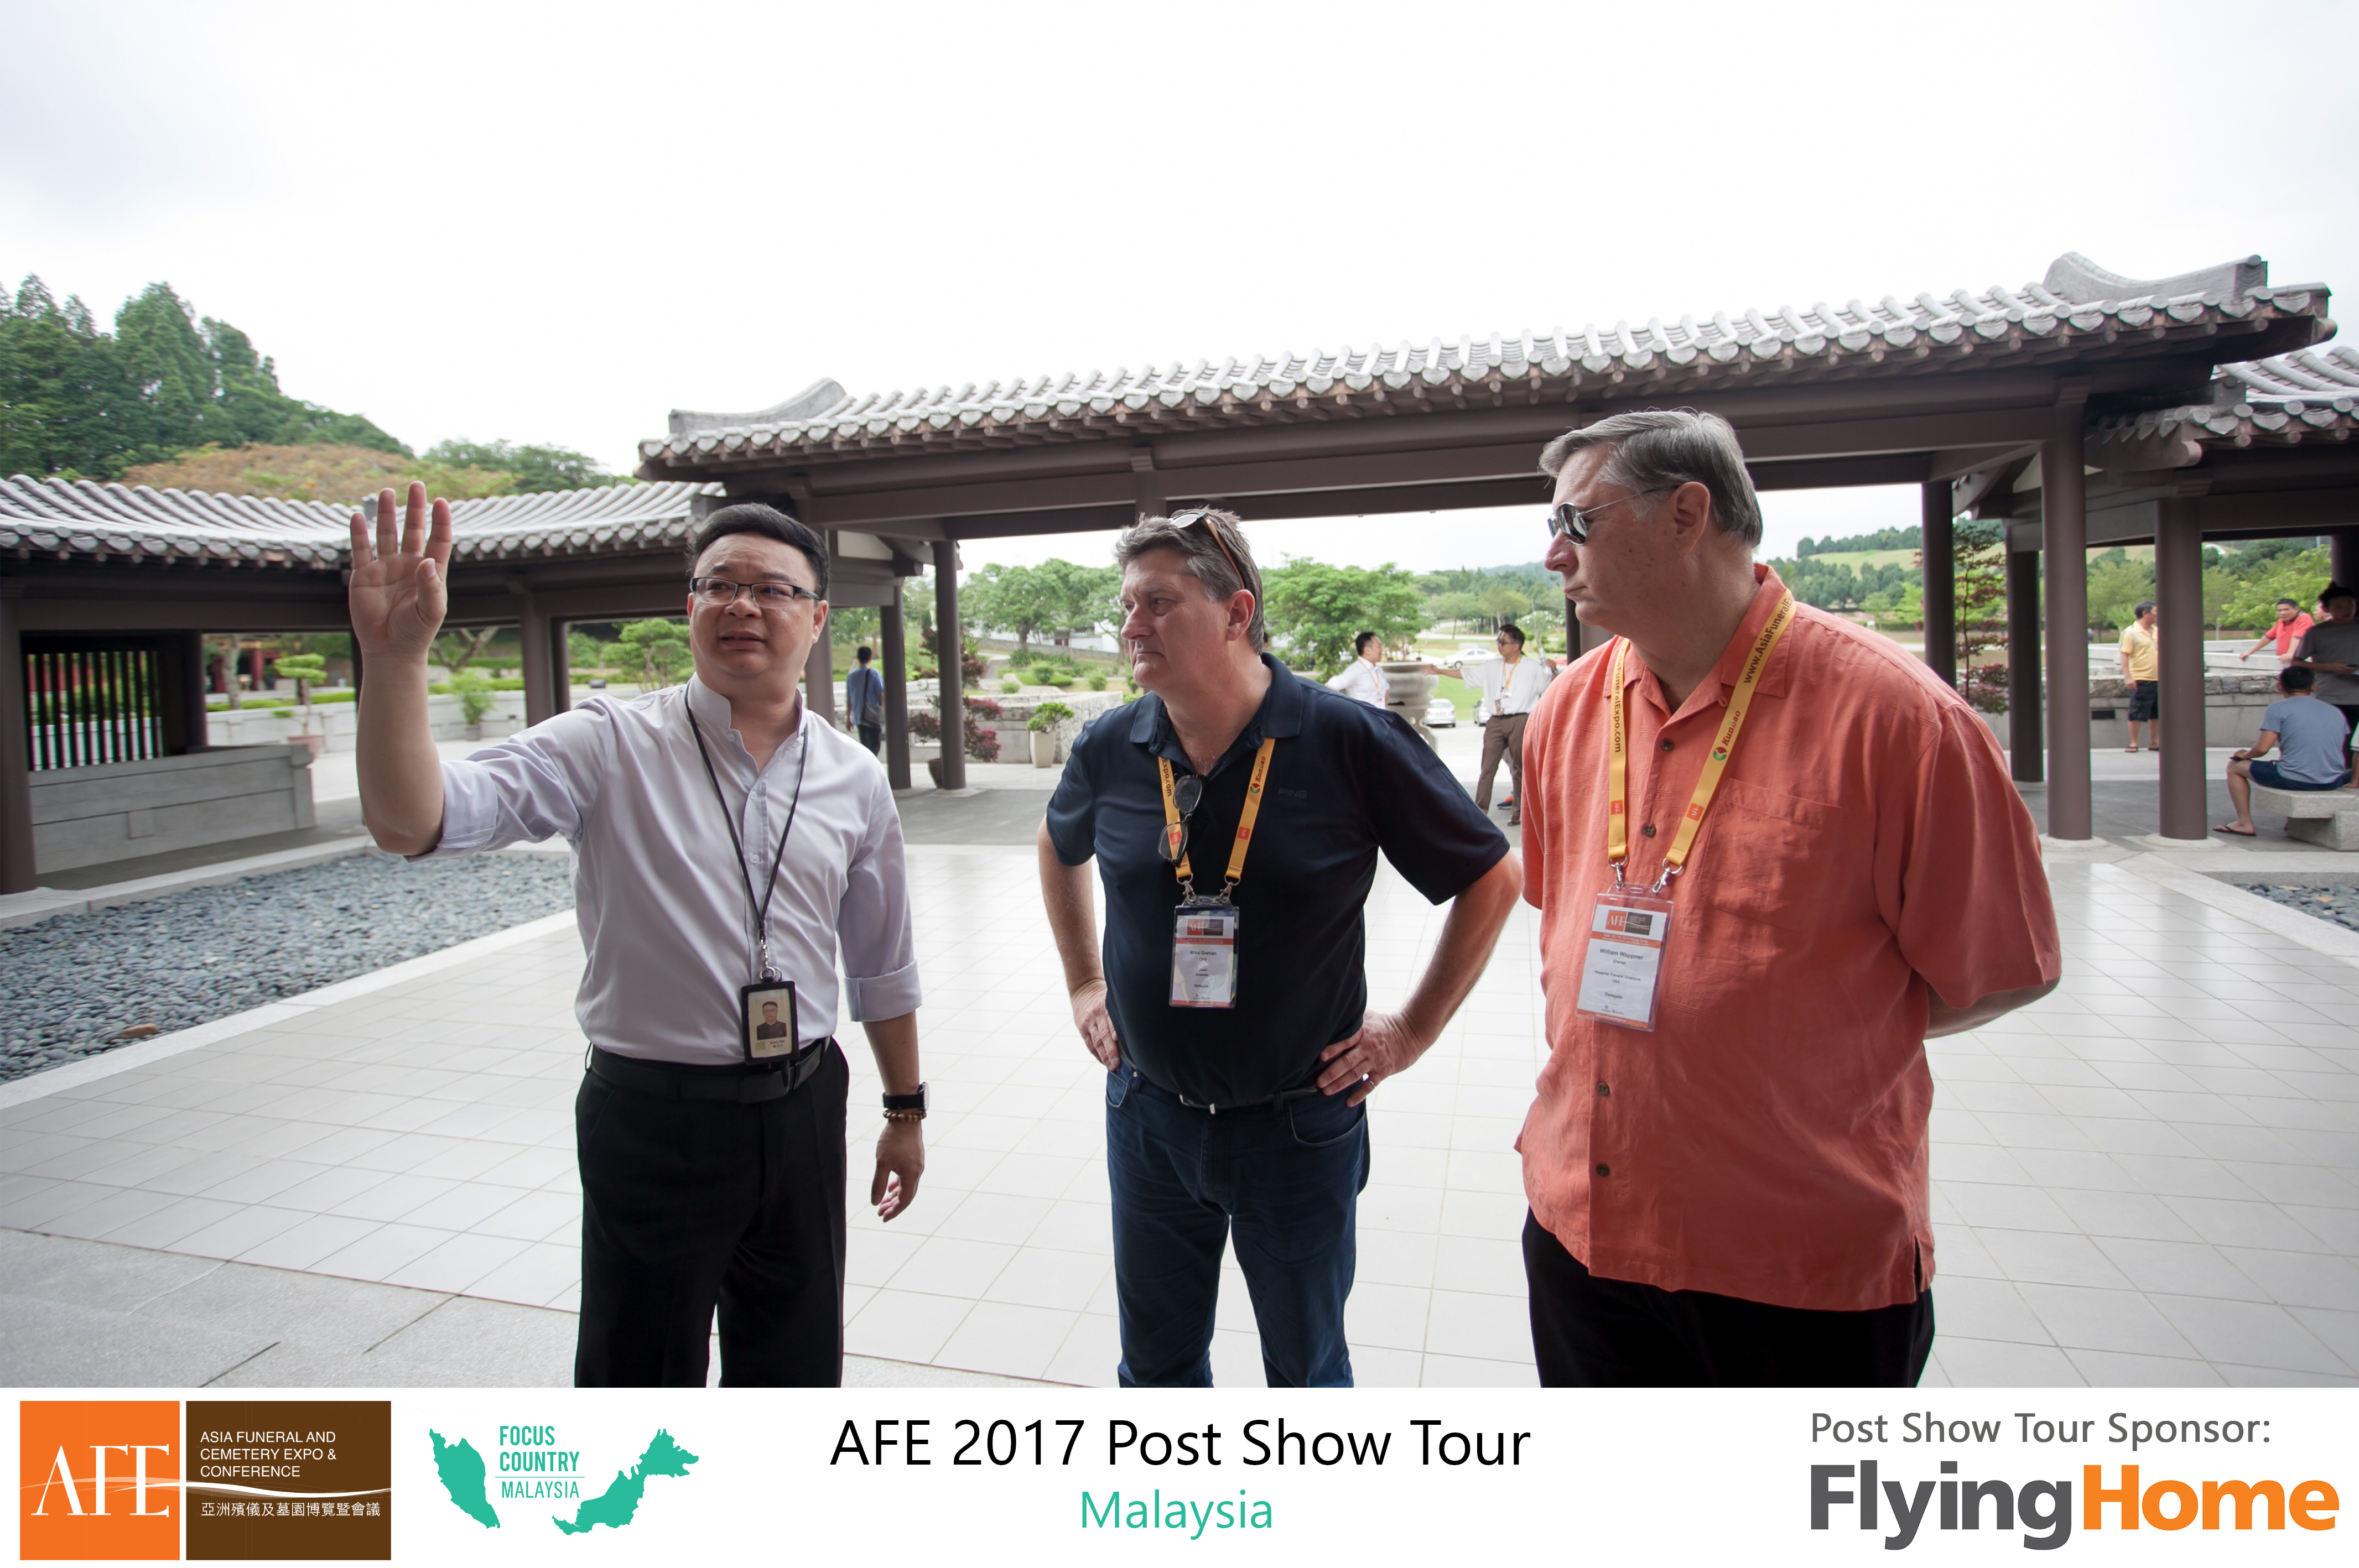 AFE Post Show Tour 2017 Day 3 -45